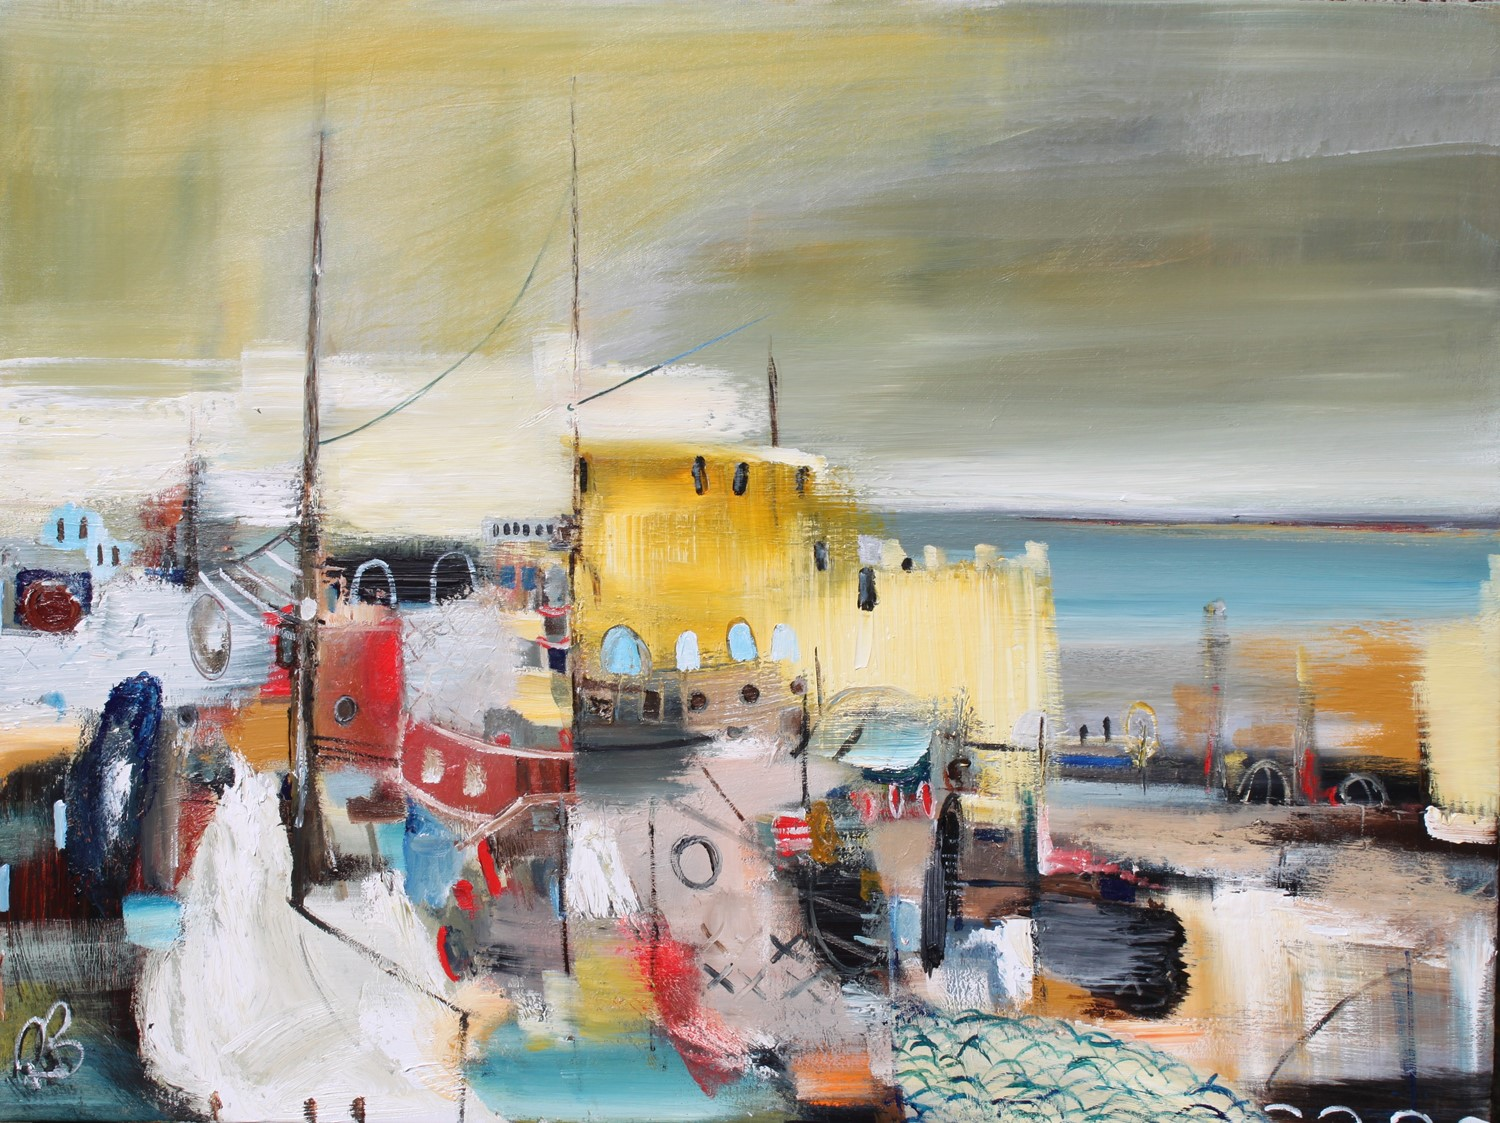 'Coastal Memories' by artist Rosanne Barr